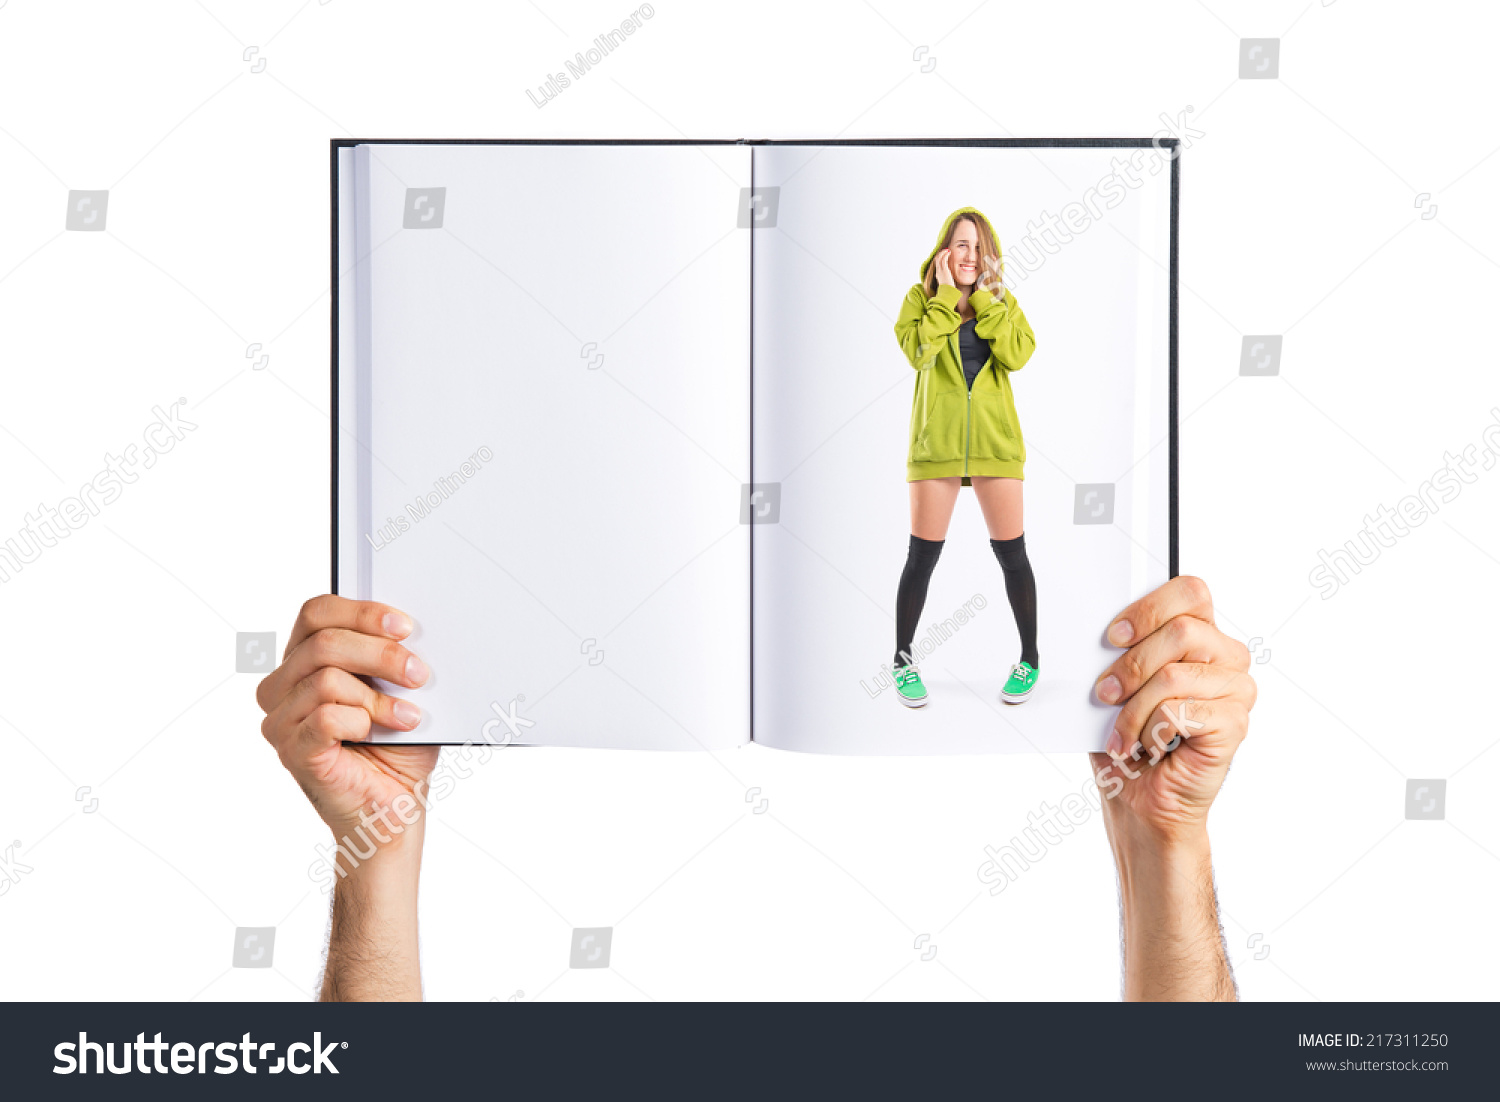 hight resolution of pretty young girl covering her ears printed on book